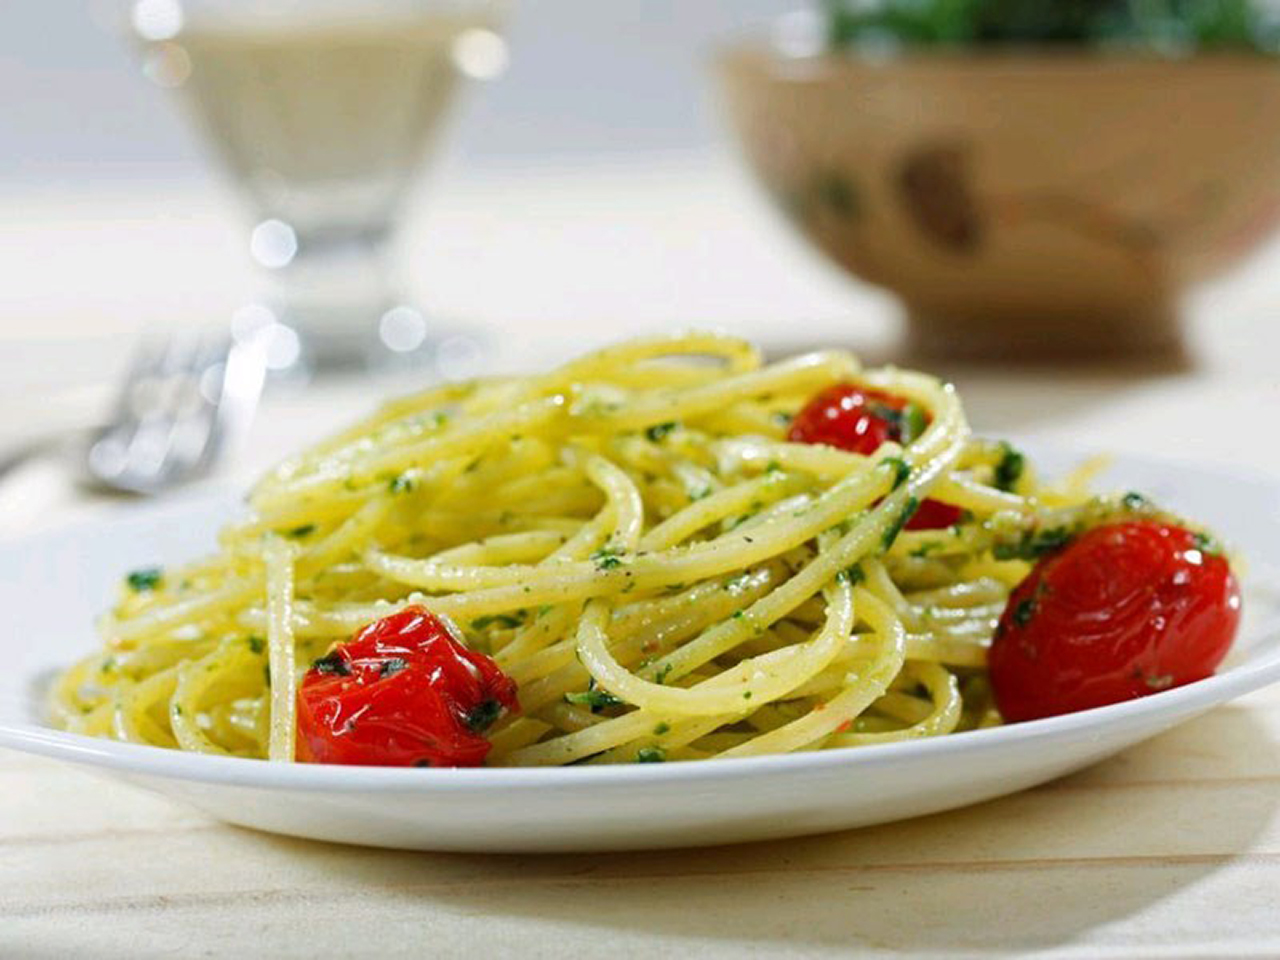 Barilla® Gluten Free Spaghetti with Blistered Grape Tomatoes, Spinach & Parsley